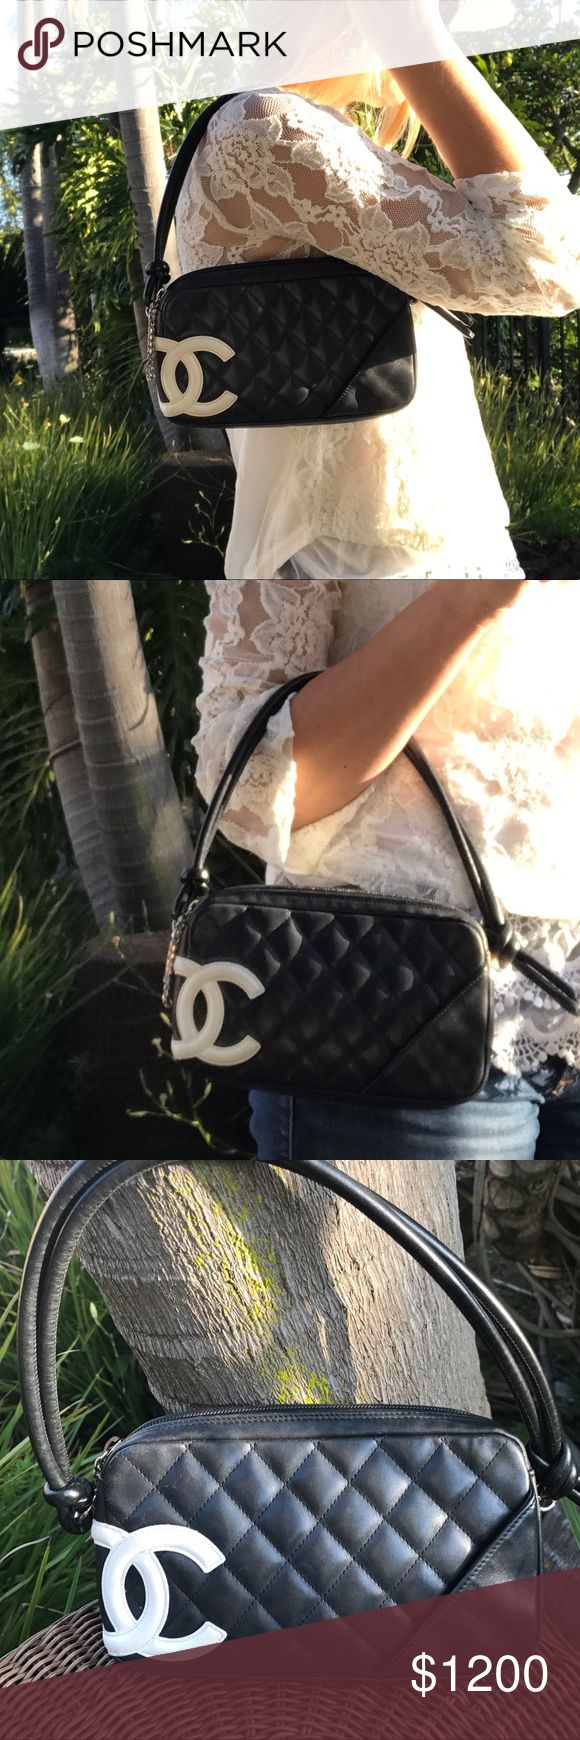 Authentic Black Chanel Ligne Cambon Pochette ❤Sale Gorgeous 2005 Collection Chanel bag for an evening out or lunch on the town!! Beautiful white logo on black! Lingne Cambone Bowler Shoulder Bag! Quilted Leather quality and perfect! Hot pink interior, considered red! Interior needs a little  cleaning! 👌🏼9.5x6x 1.5 inches CHANEL Bags Clutches & Wristlets